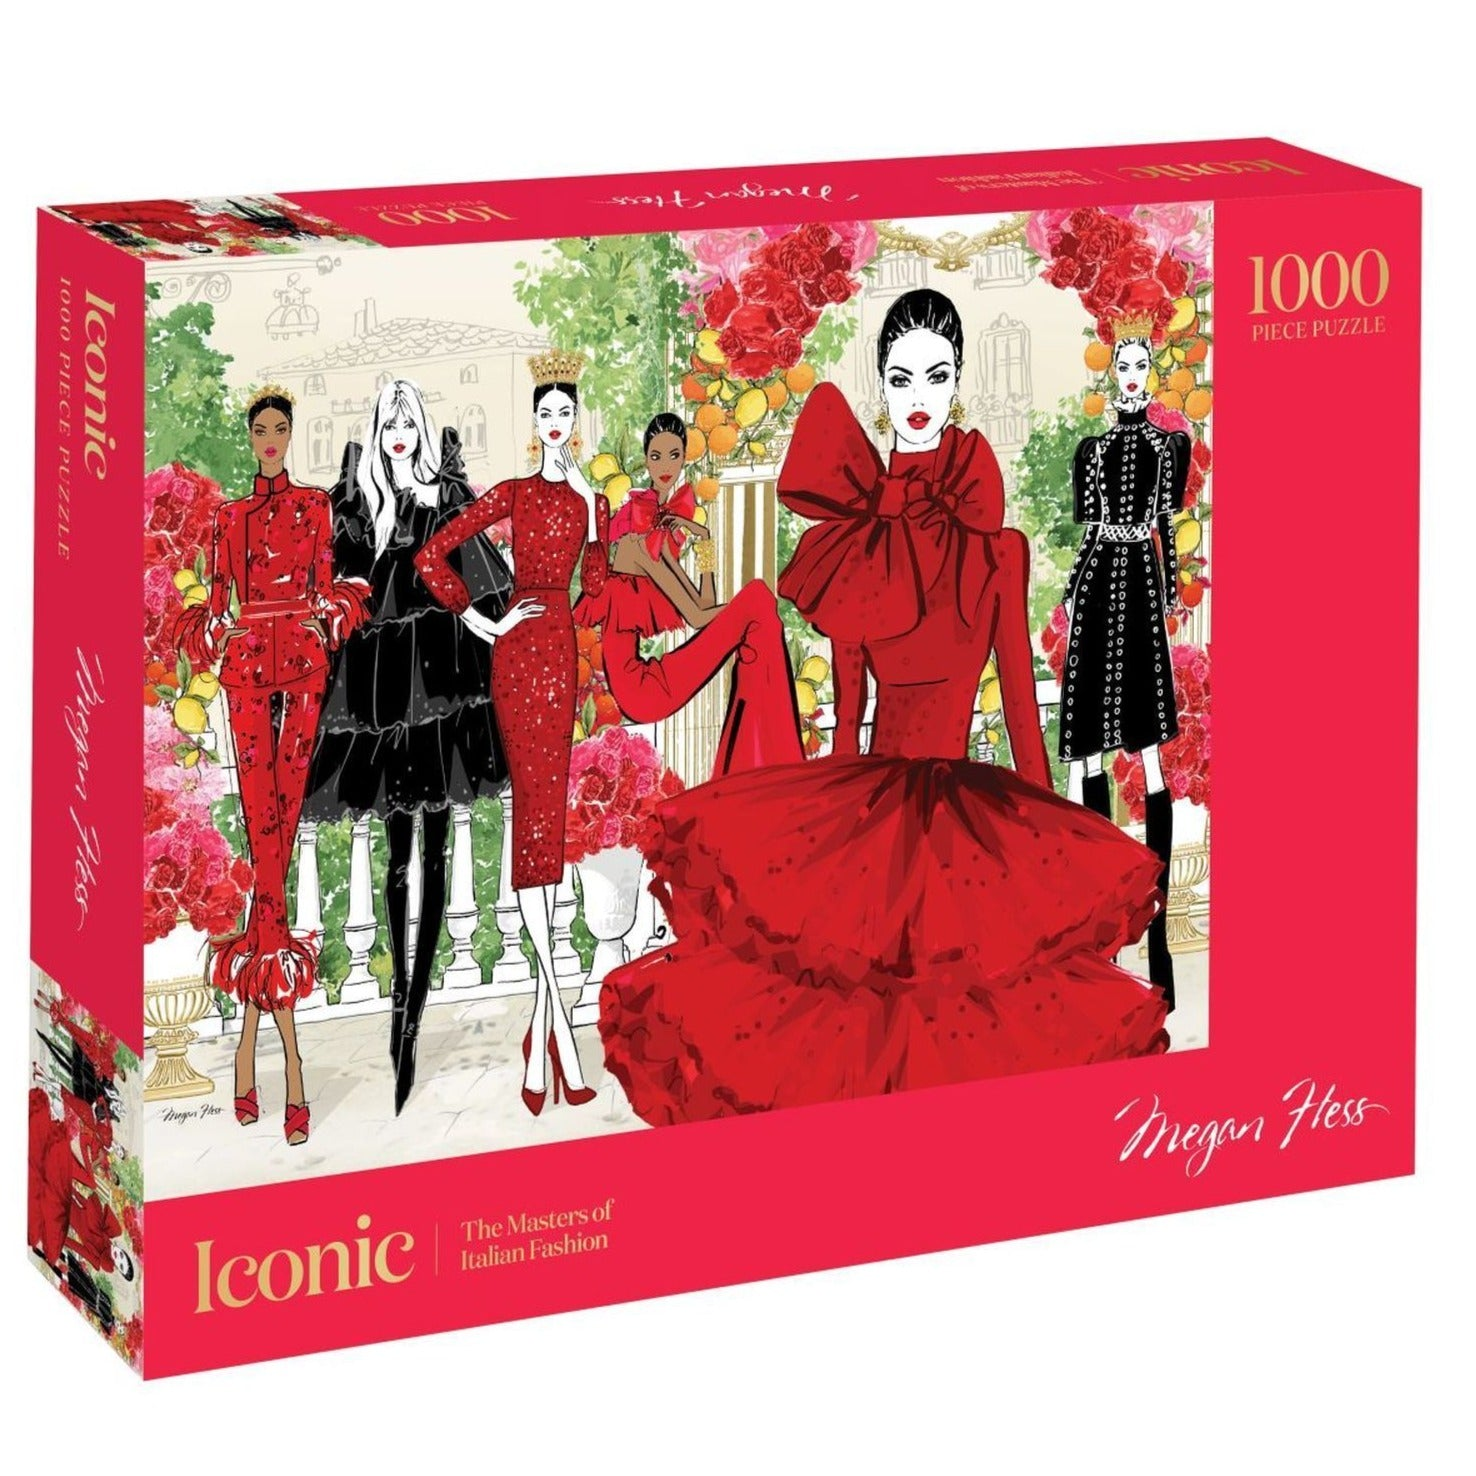 1000 piece adult fashion puzzle to ship